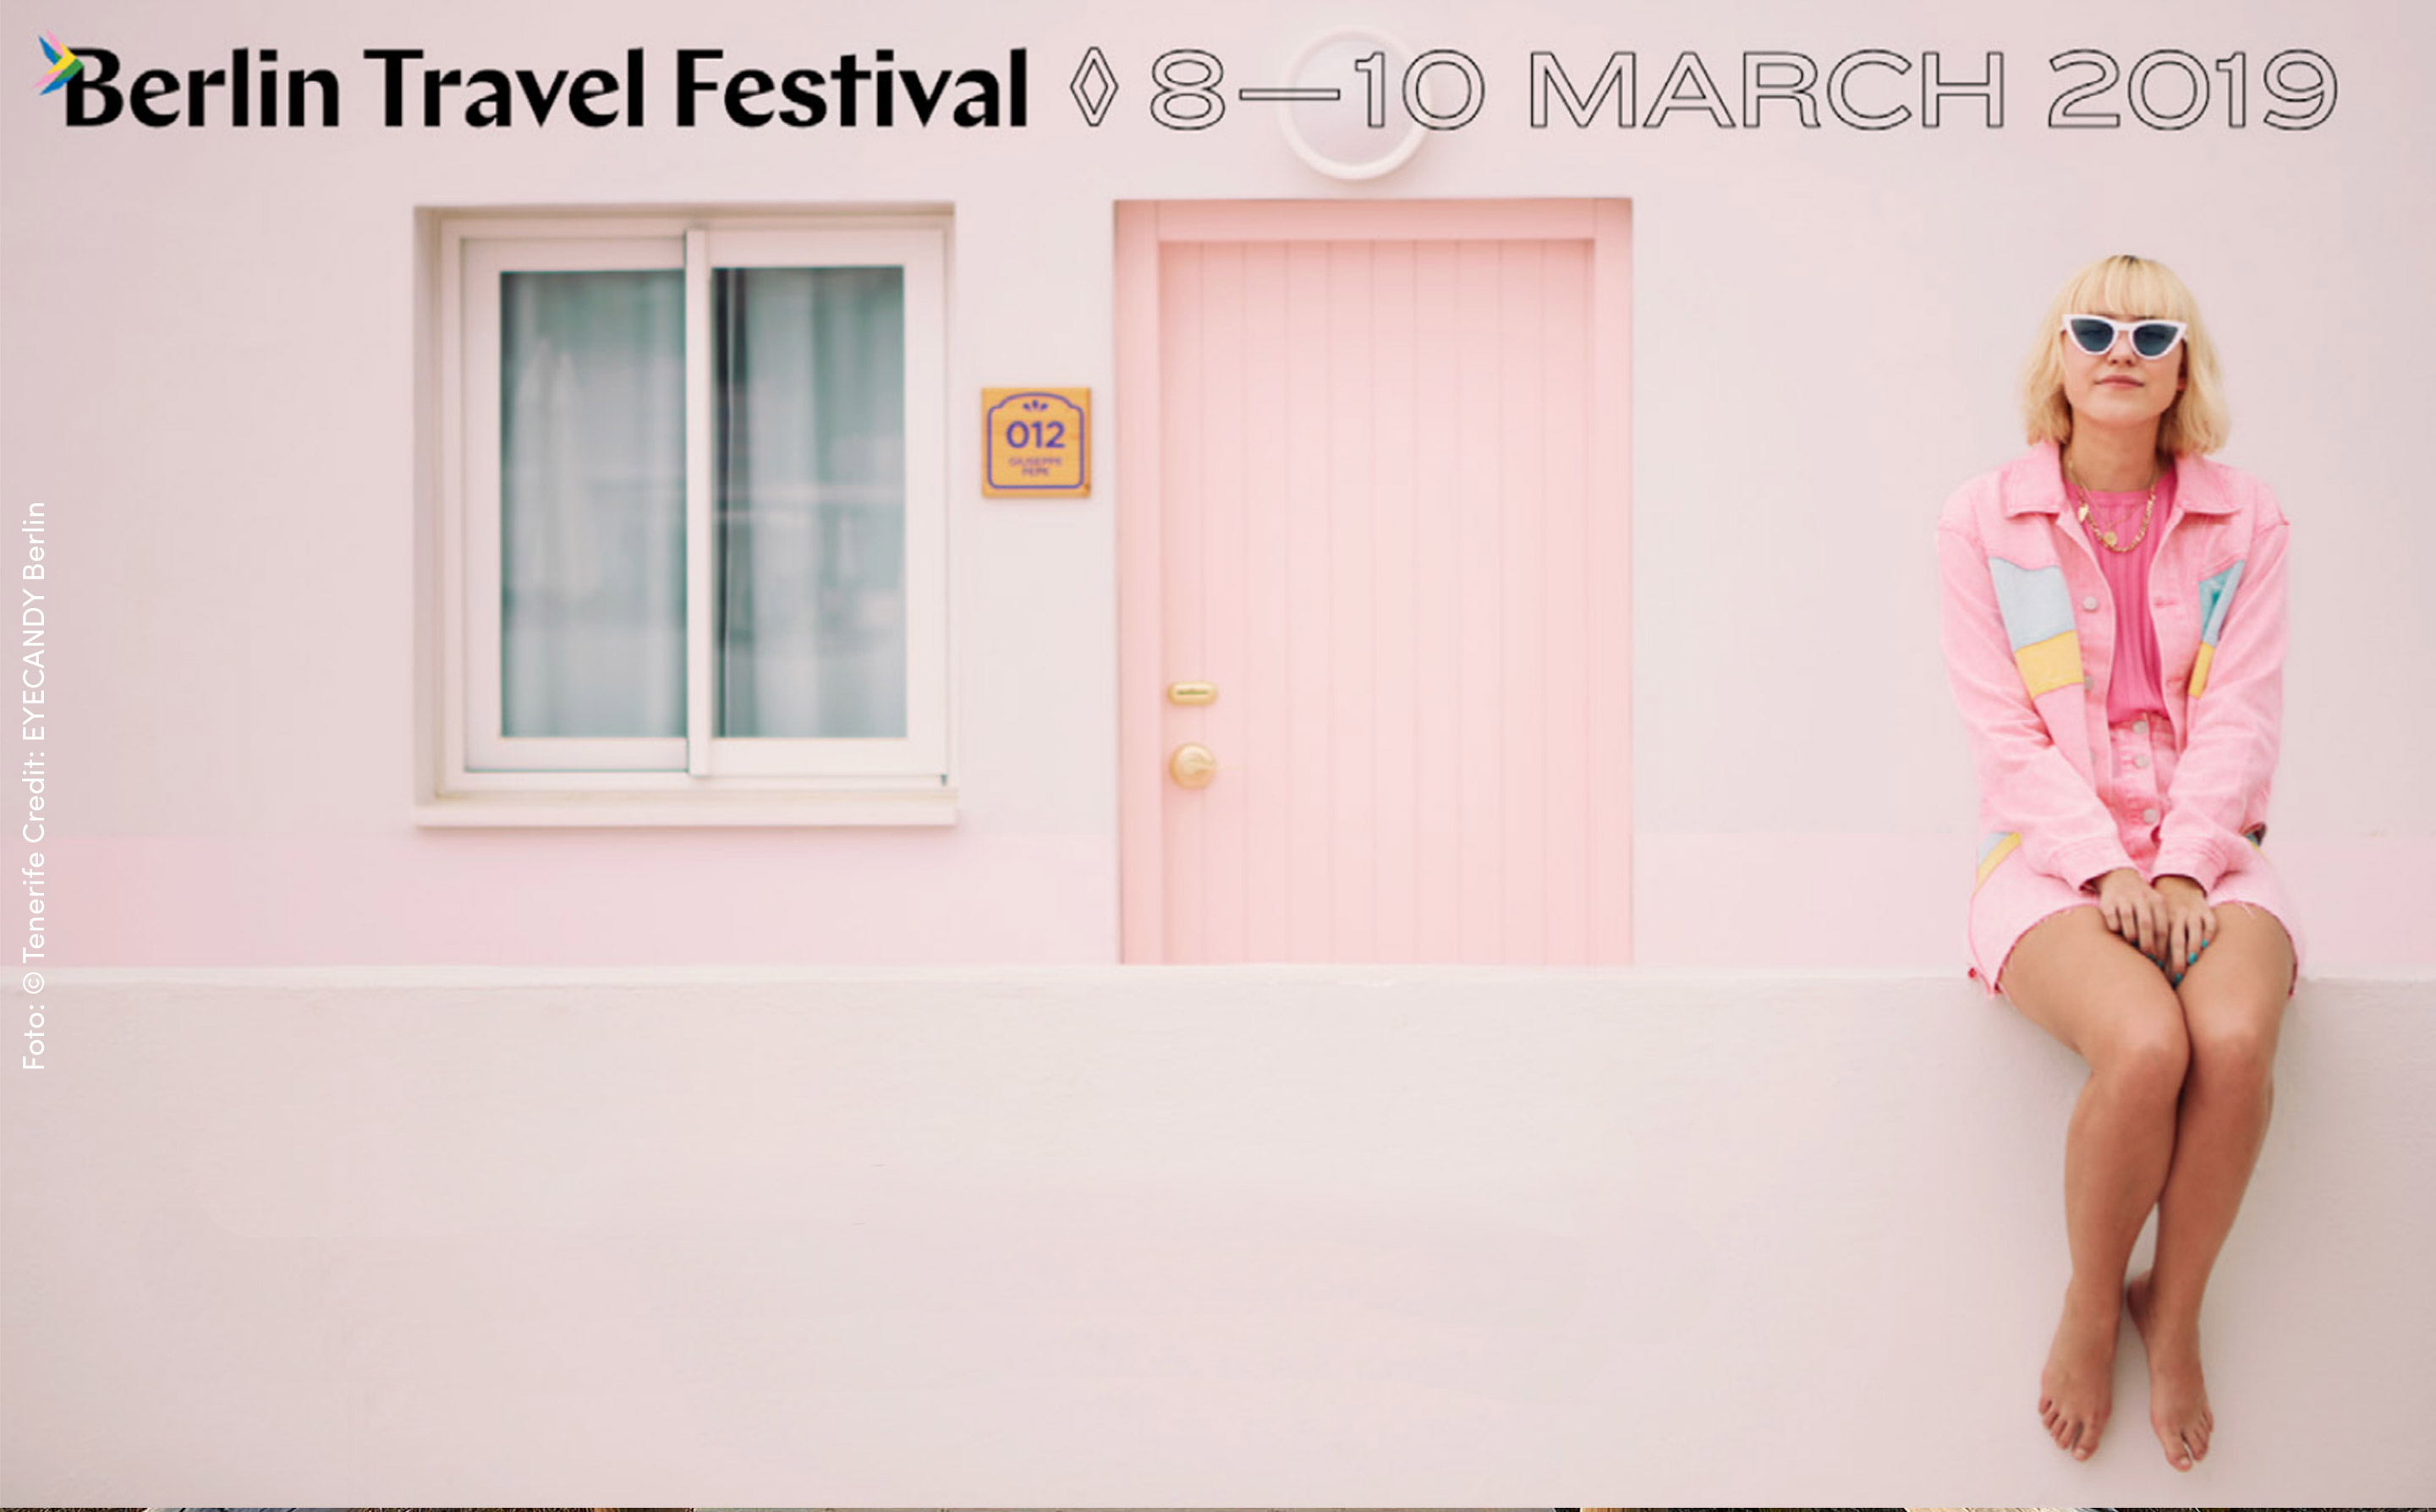 Berlin Travel Festival 2019